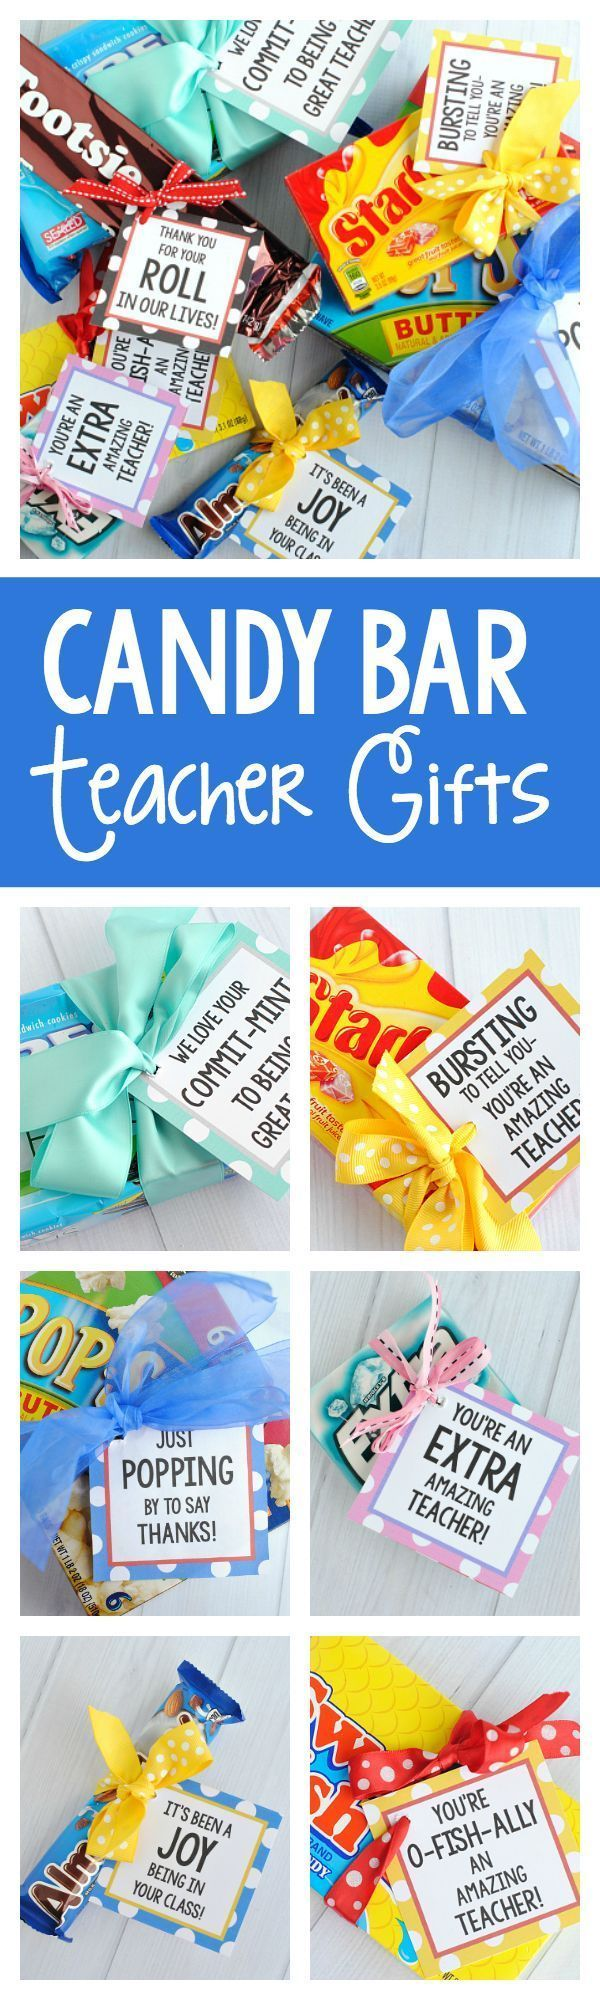 174 best images about Candy Bar Sayings on Pinterest ...